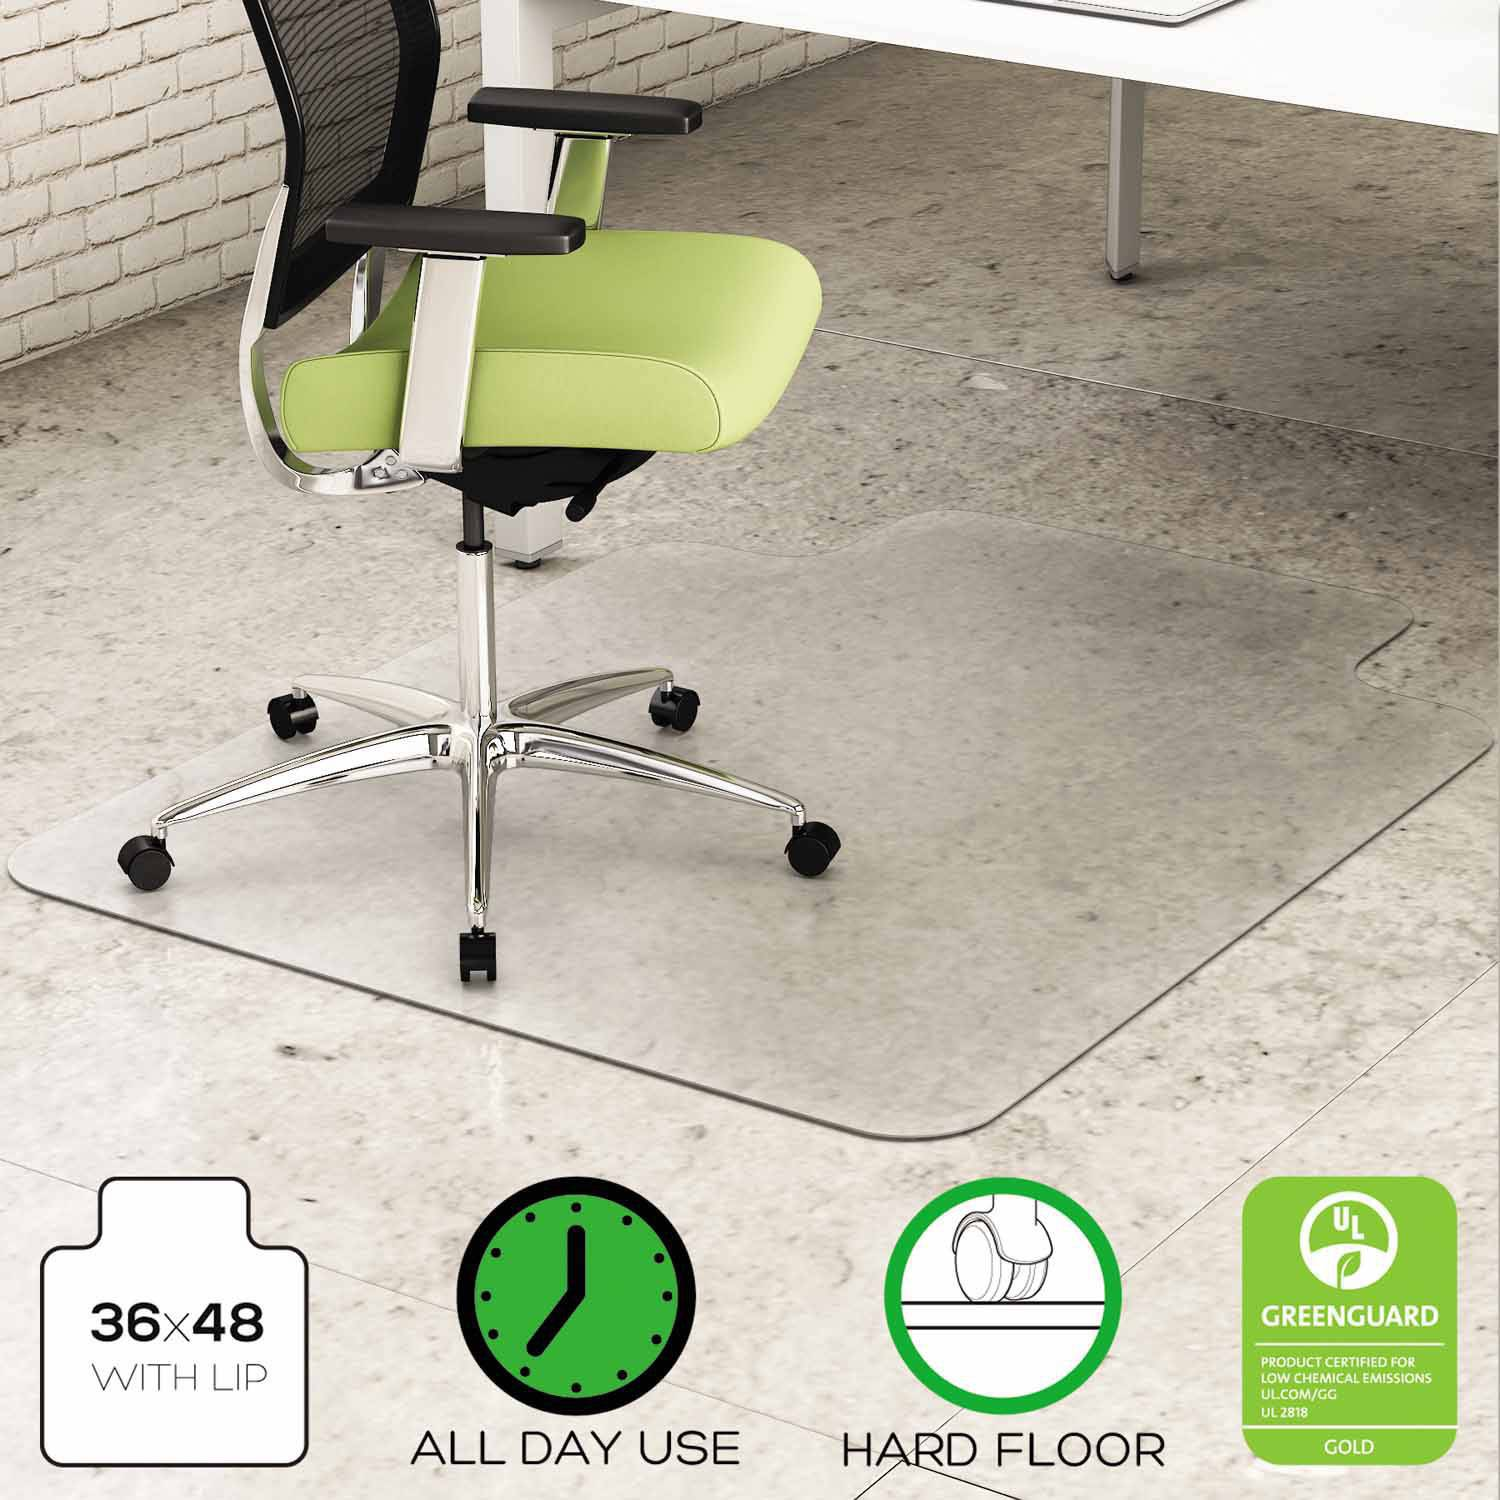 "deflecto EnvironMat Recycled Anytime Use Chair Mat for Hard Floor, 36"" x 48"" with Lip, Clear"